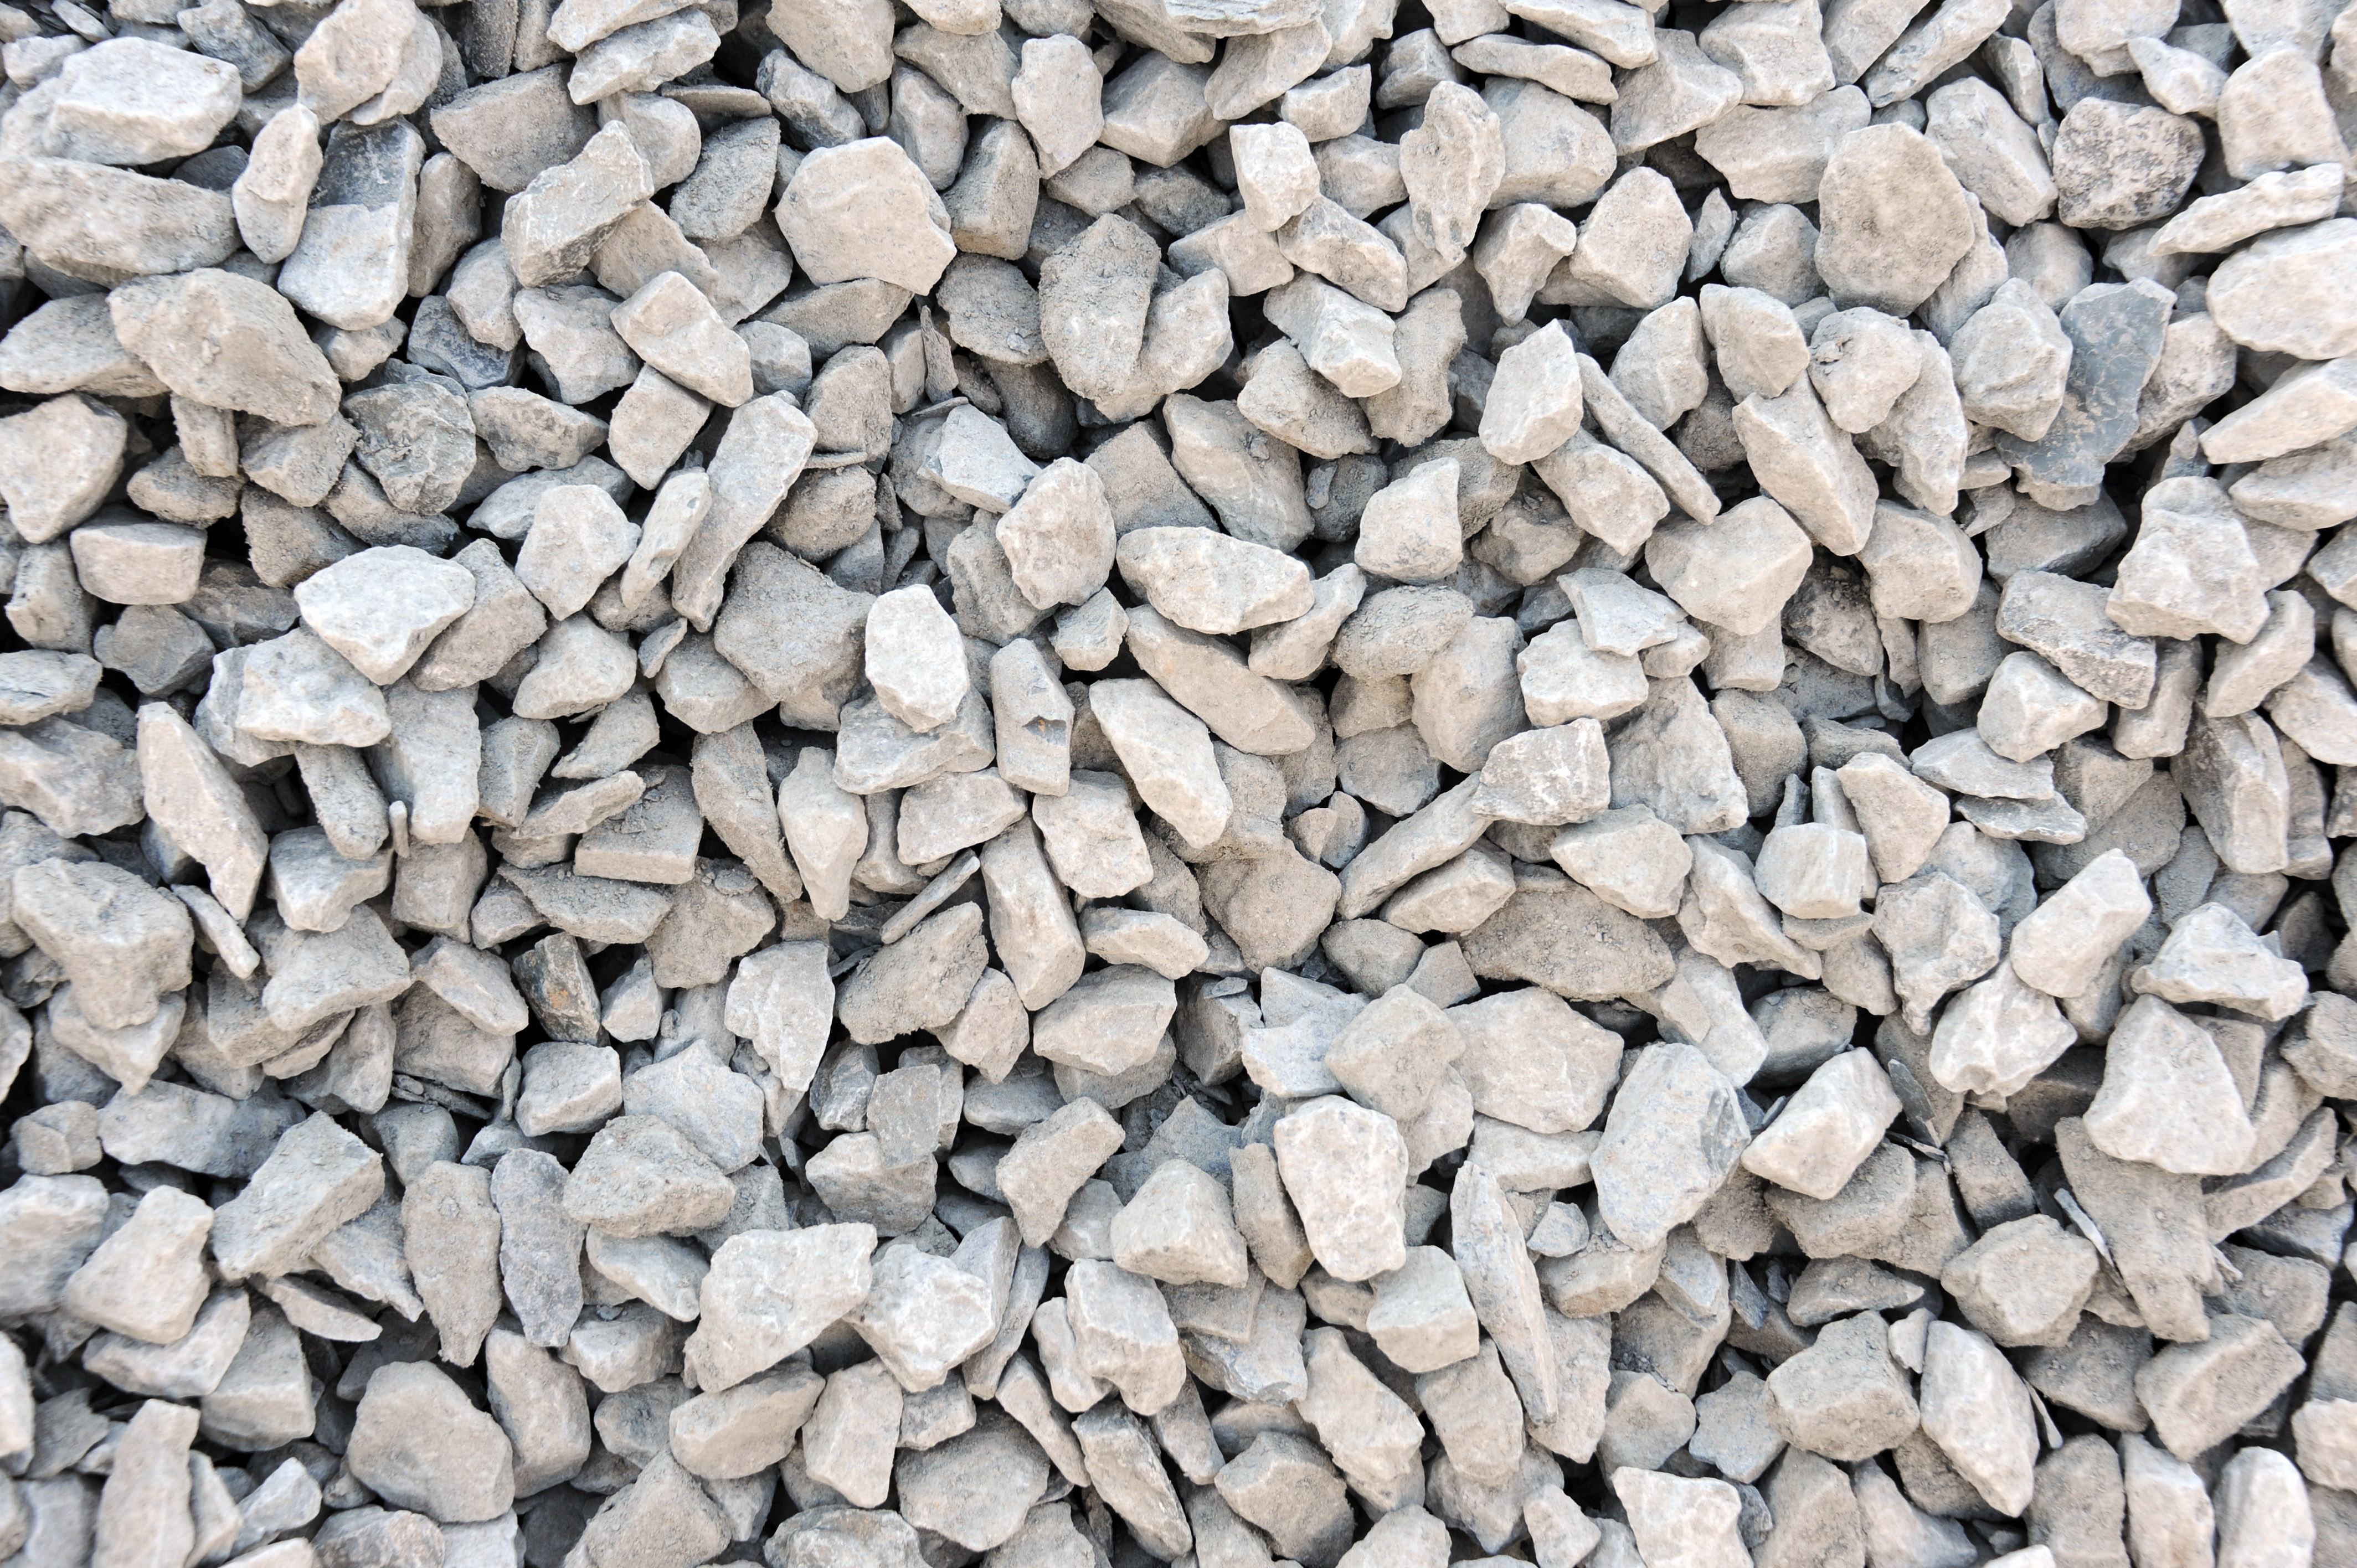 Crushed Stones Texture - Background Labs